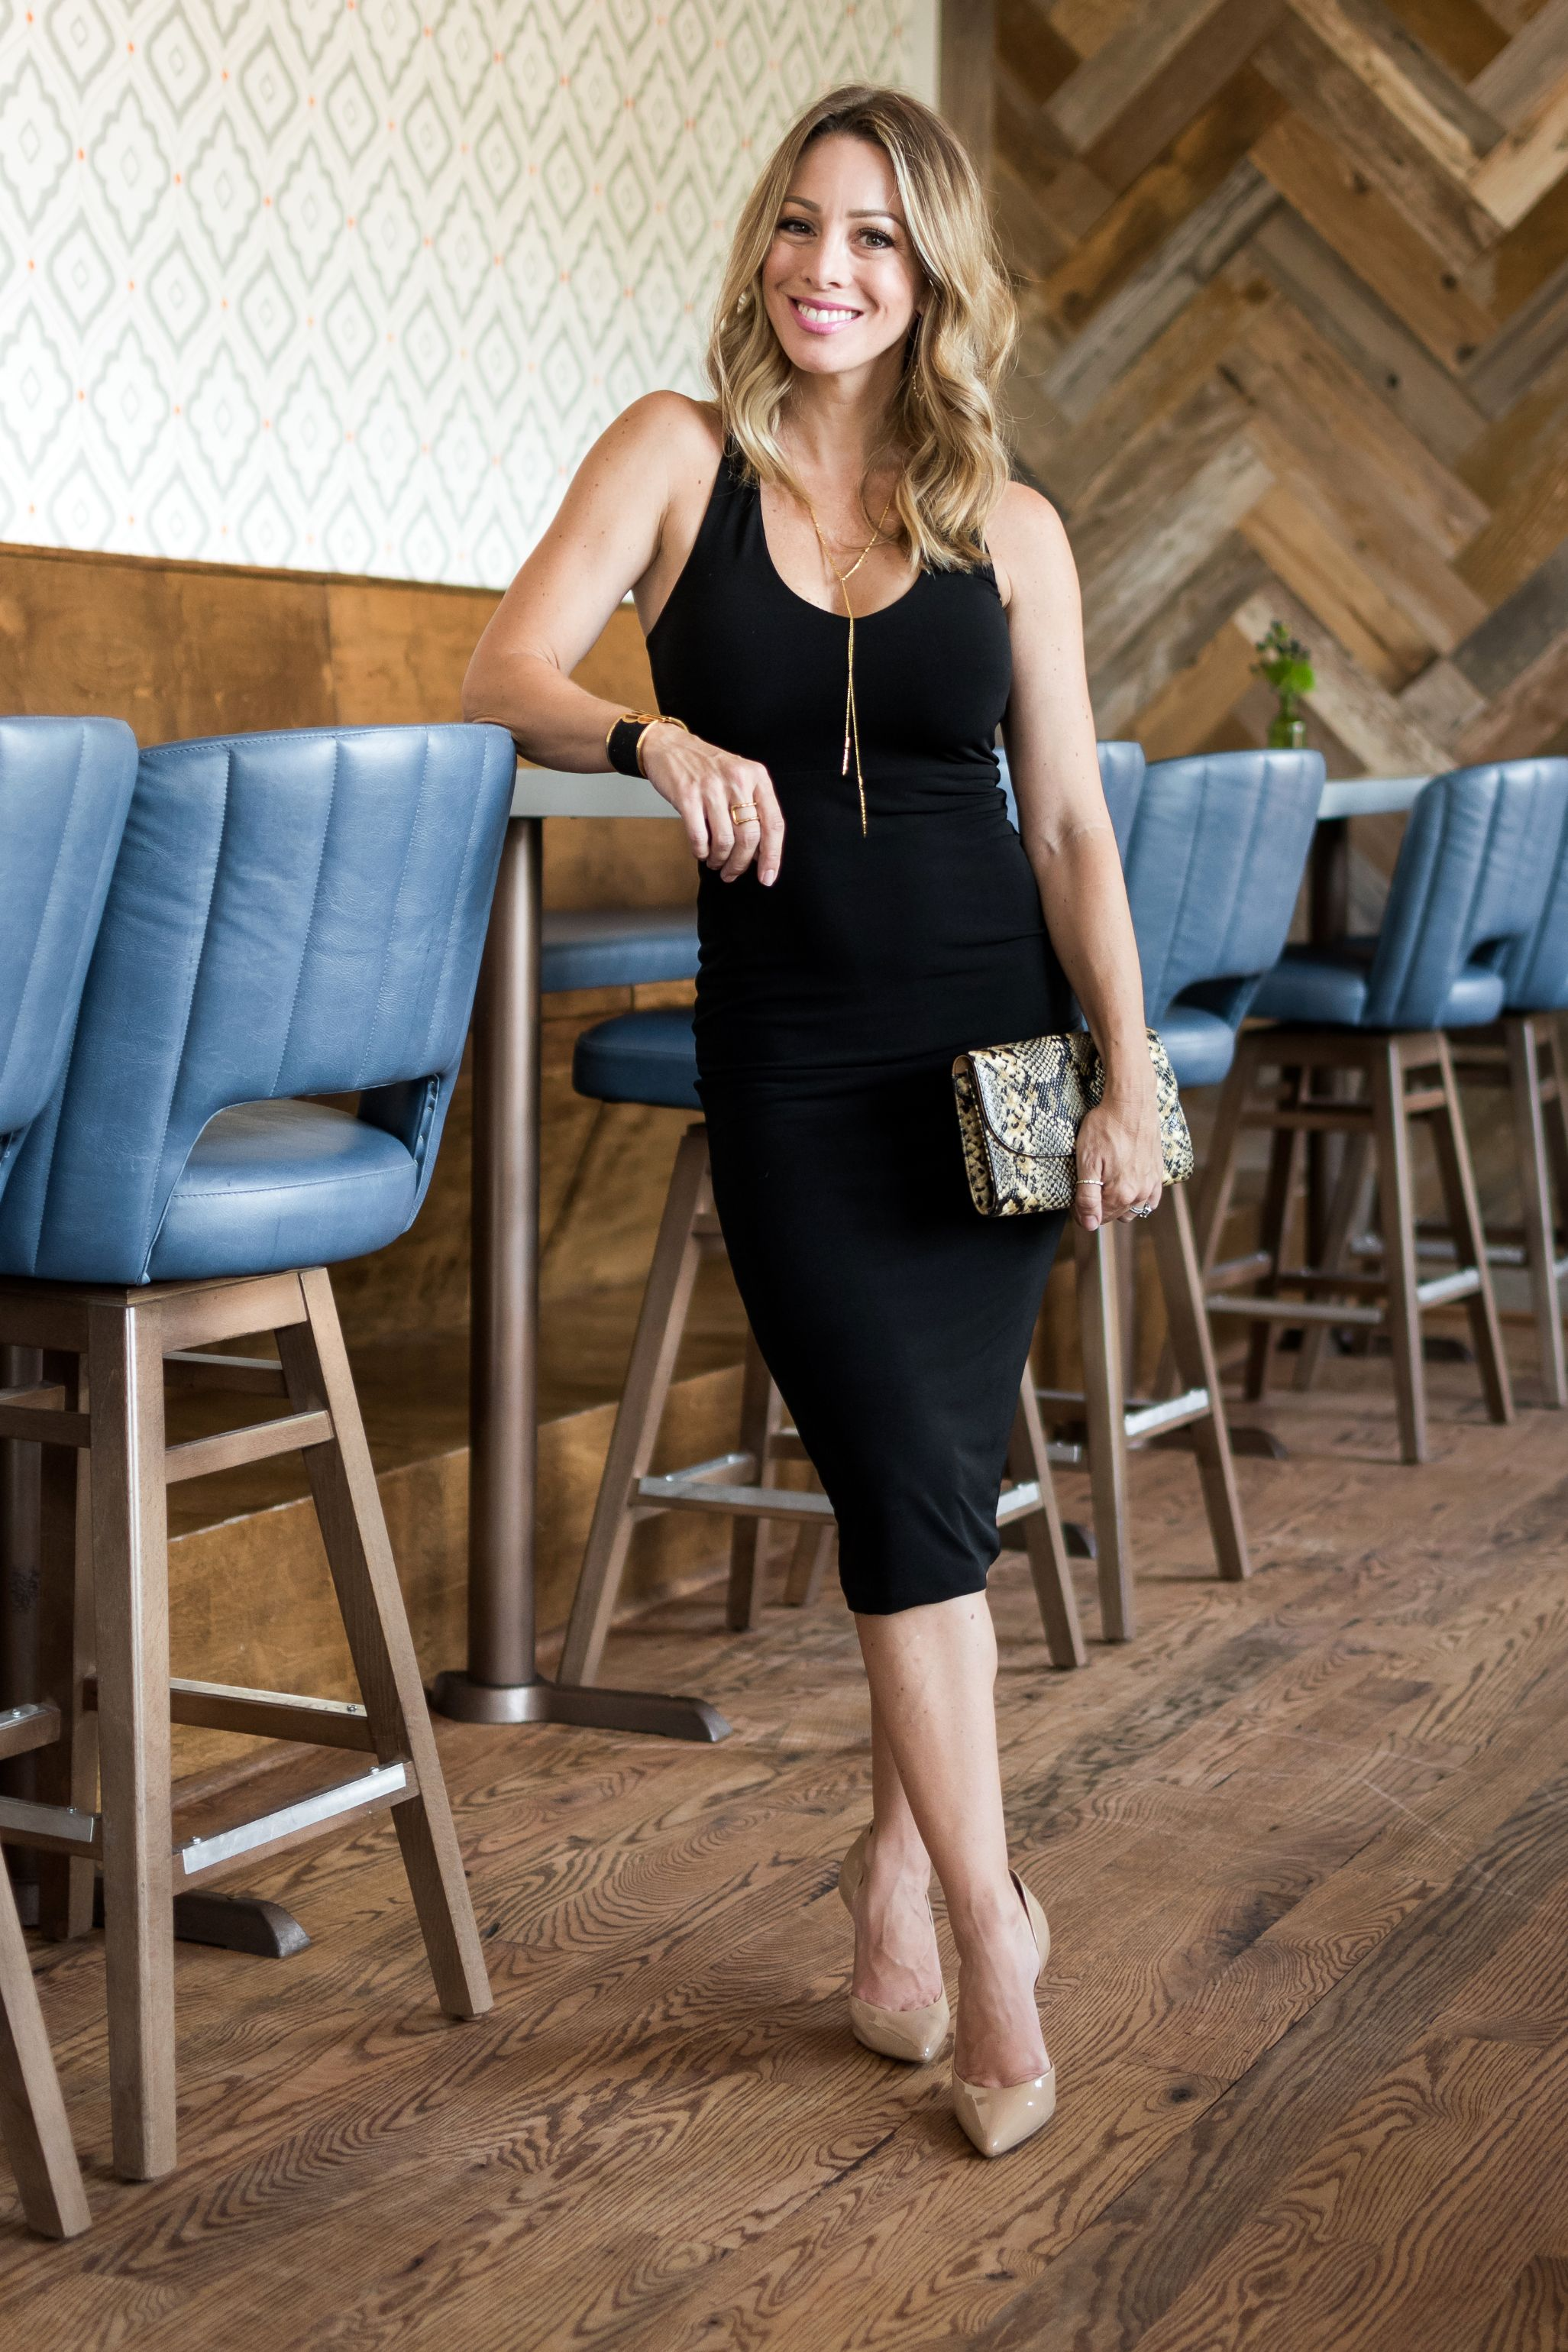 Outfits Lately 25 Summer To Fall Outfit Ideas Honey We Re Home Tank Dresses Outfit Black Tank Dress Outfit Maxi Dress Outfit Fall [ 3079 x 2053 Pixel ]